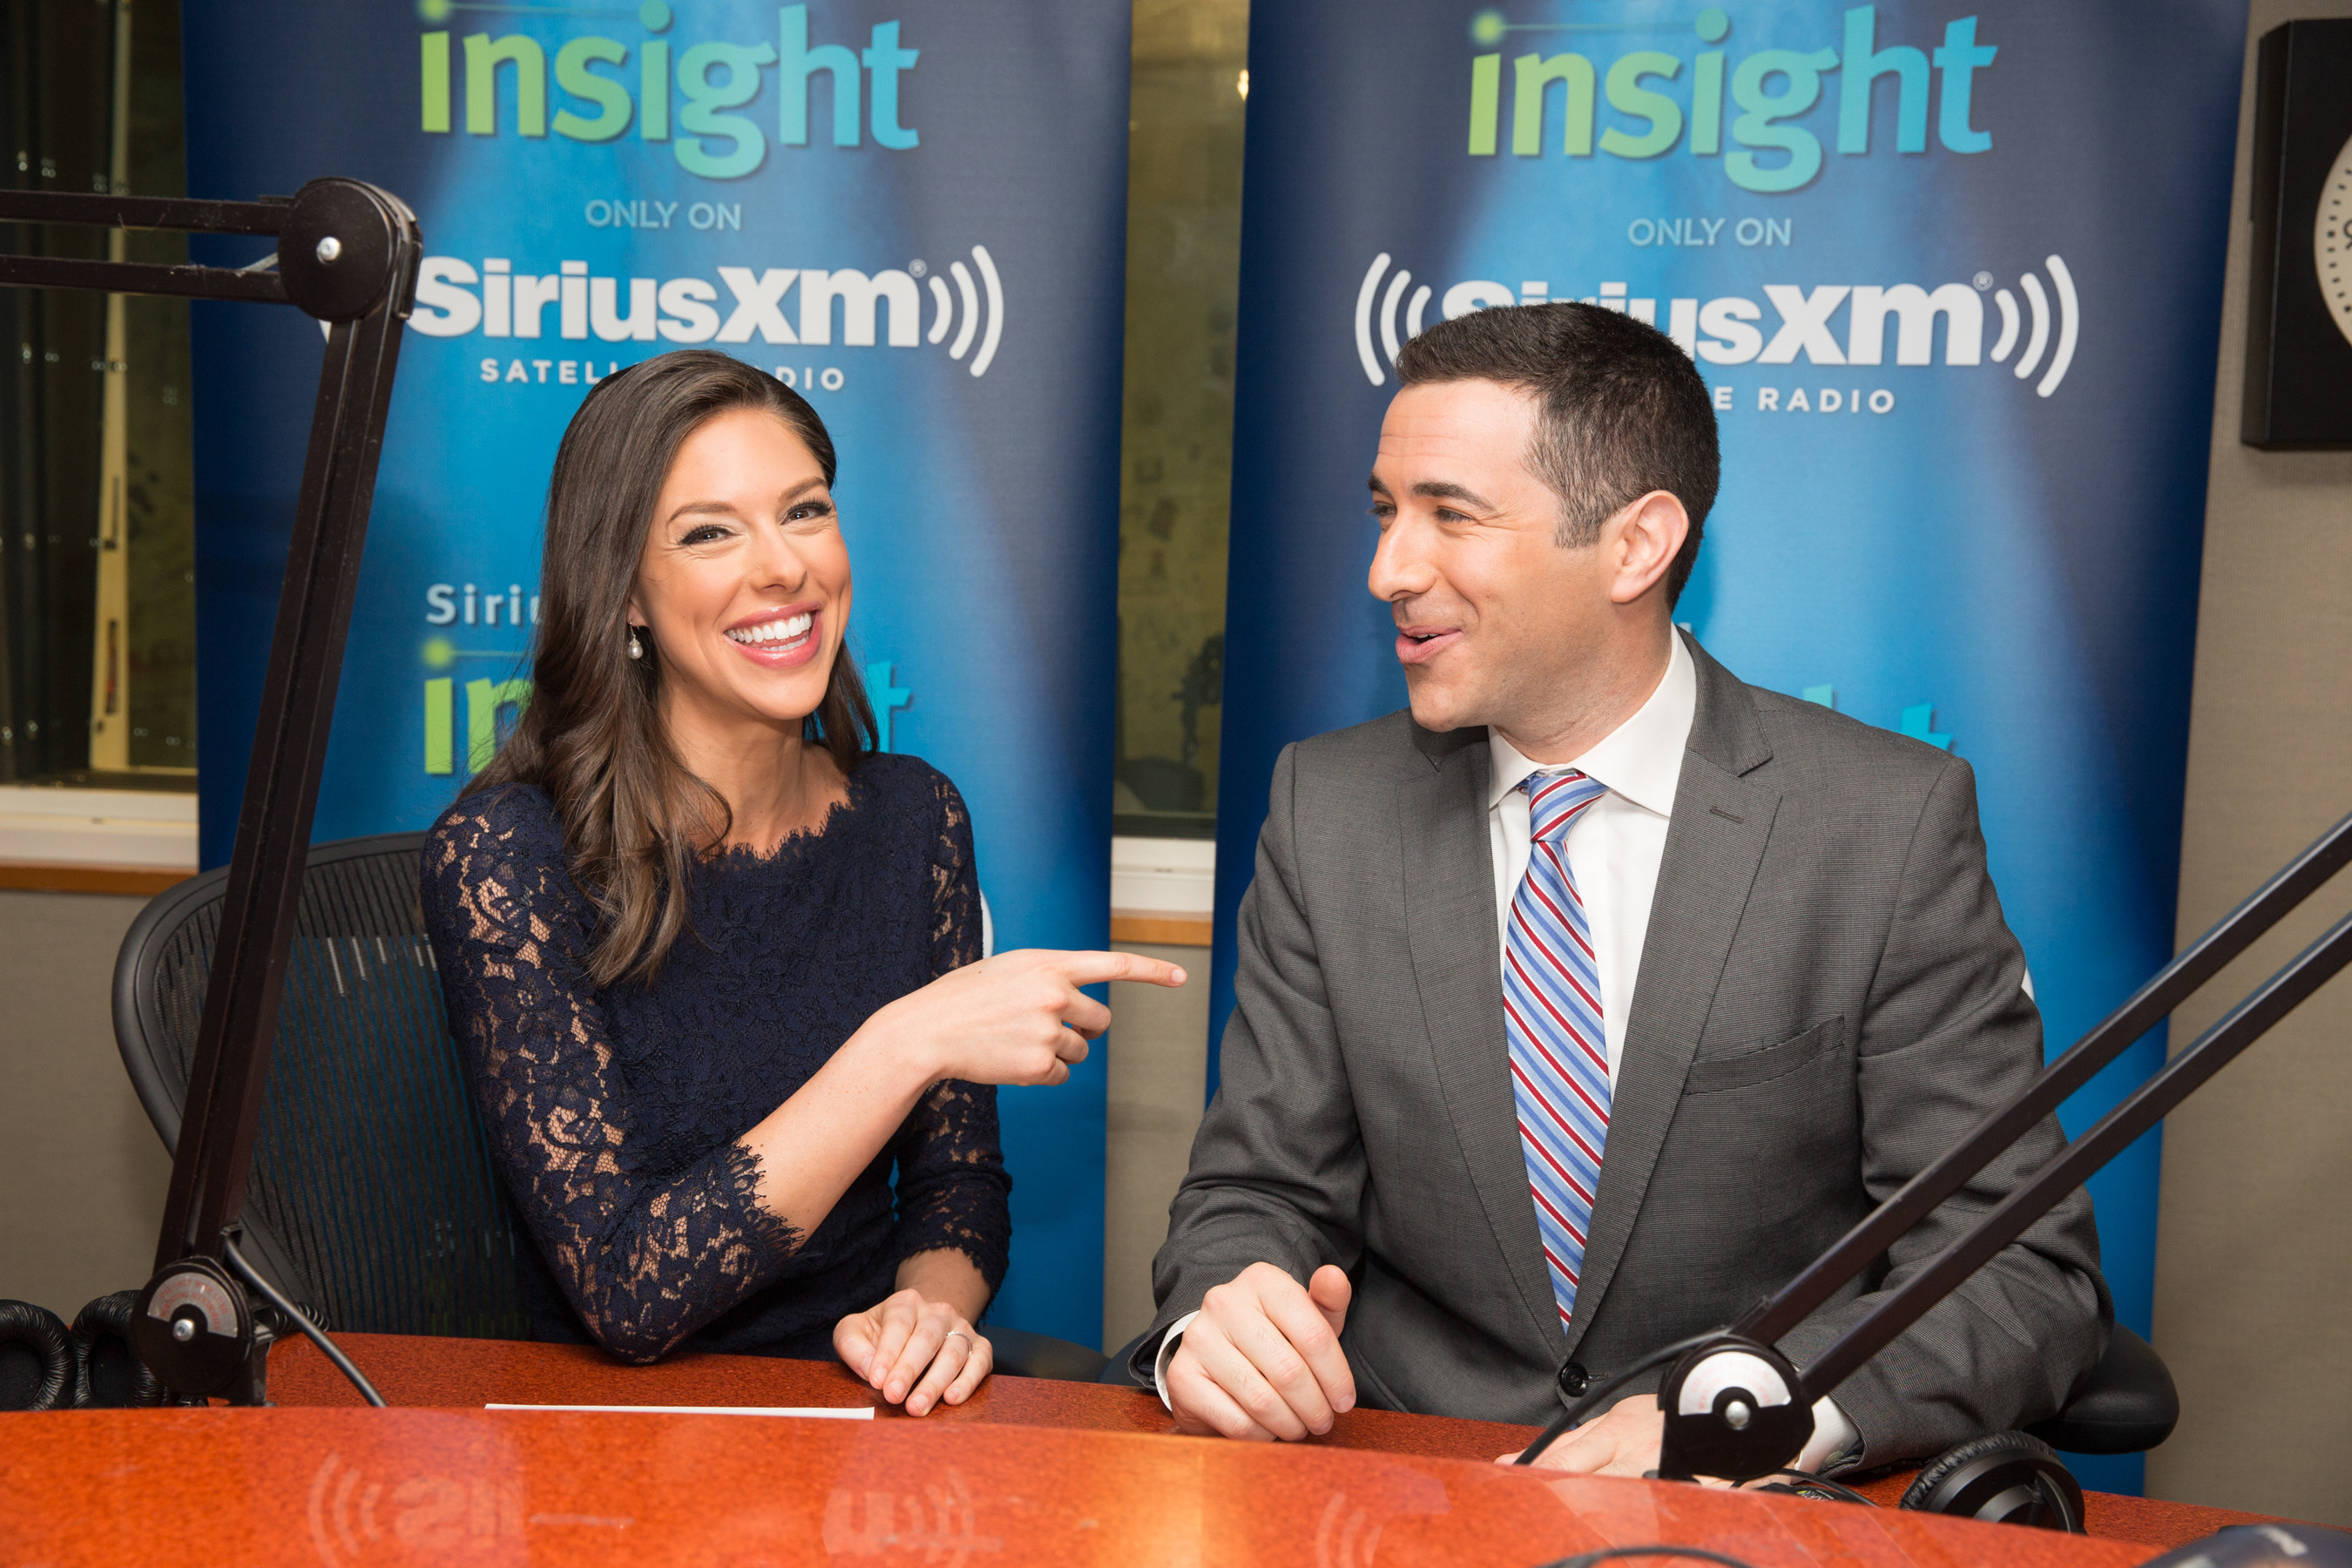 SiriusXM to Launch 'Let's Talk with Abby and Ari,' a New, Weekly Show Airing on SiriusXM Insight